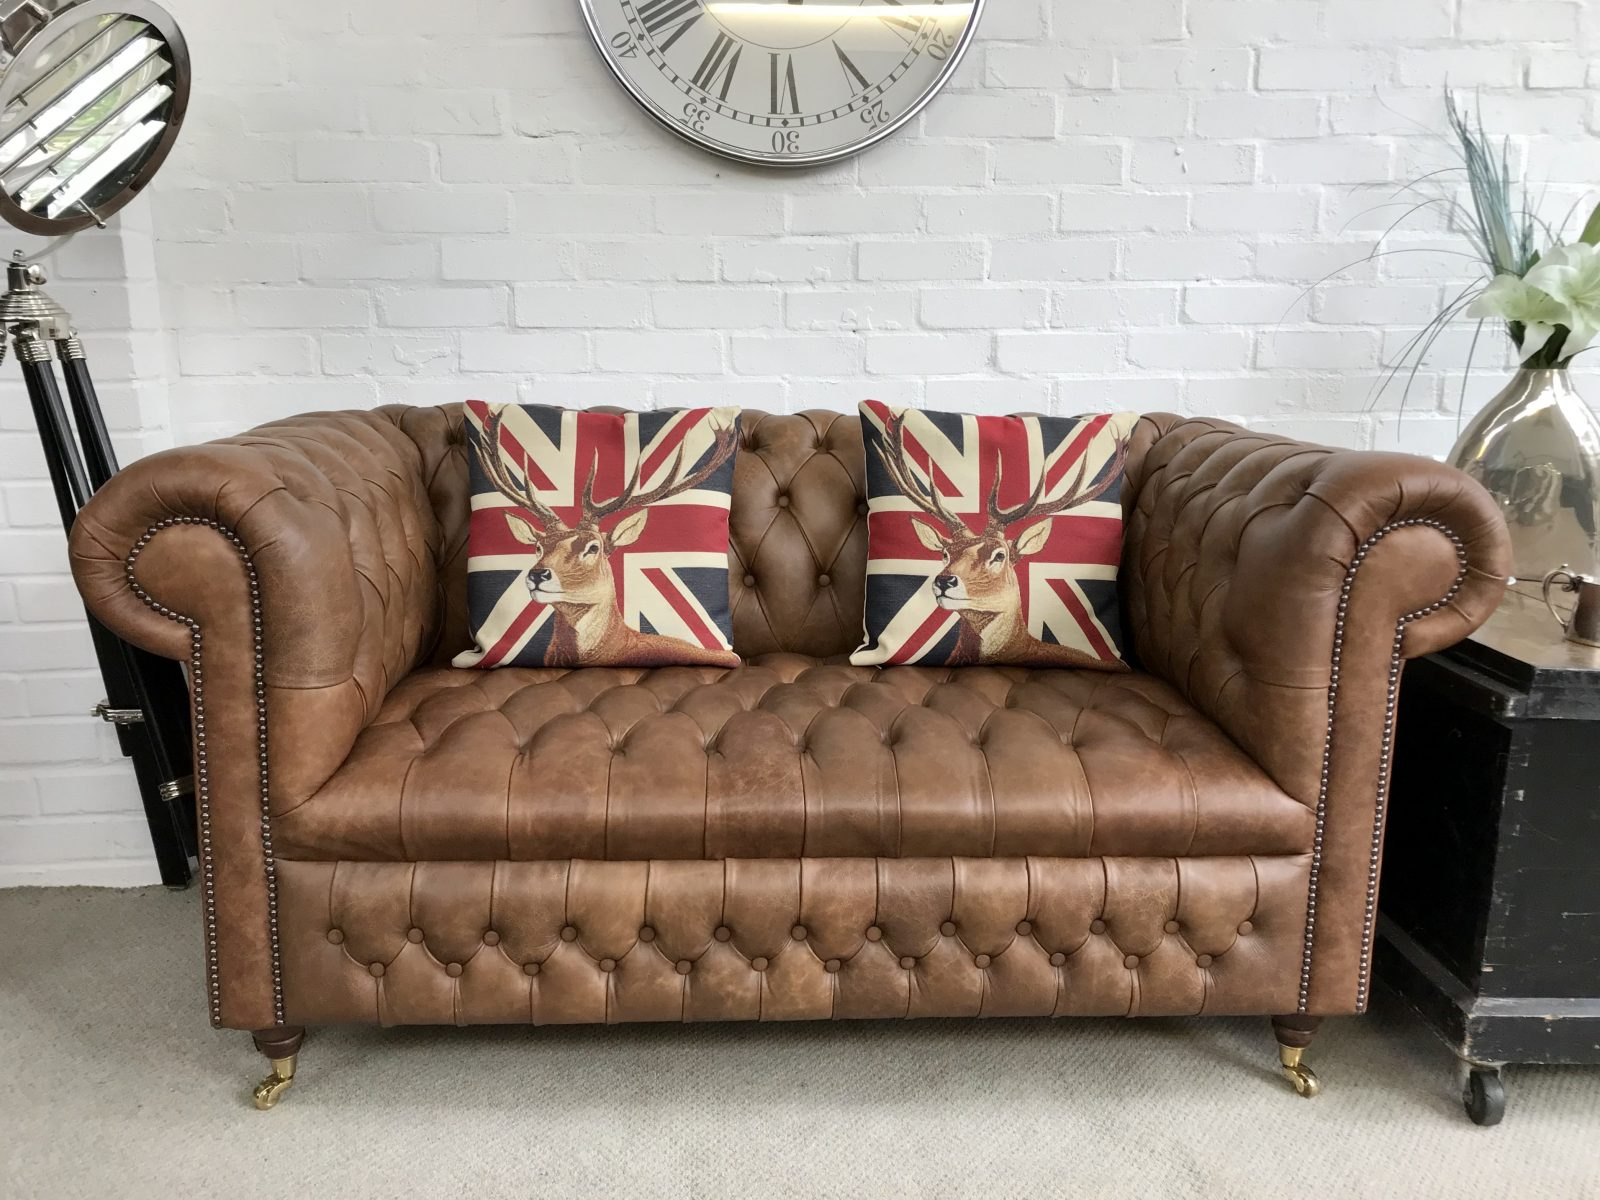 Saddle Tan Chesterfield Sofa. ( Matching 3 Seater Available )